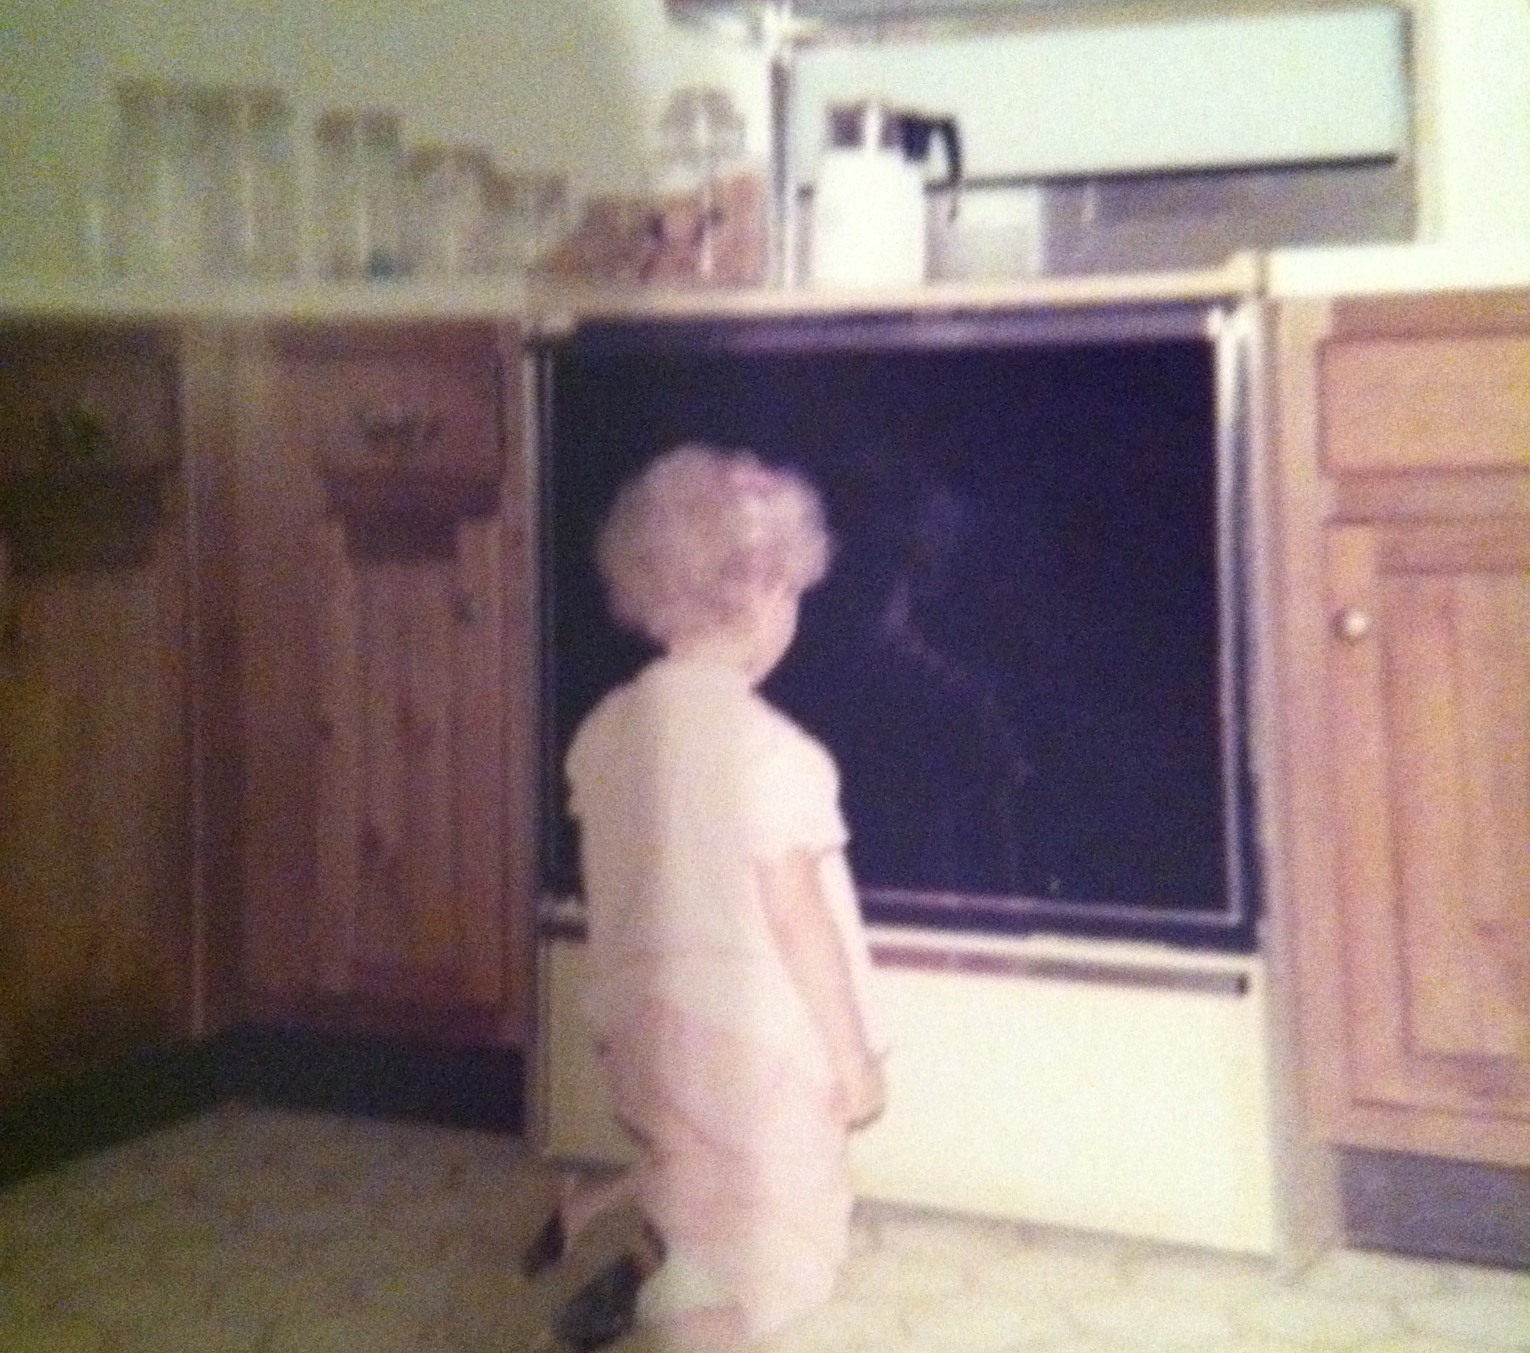 Child looking at oven